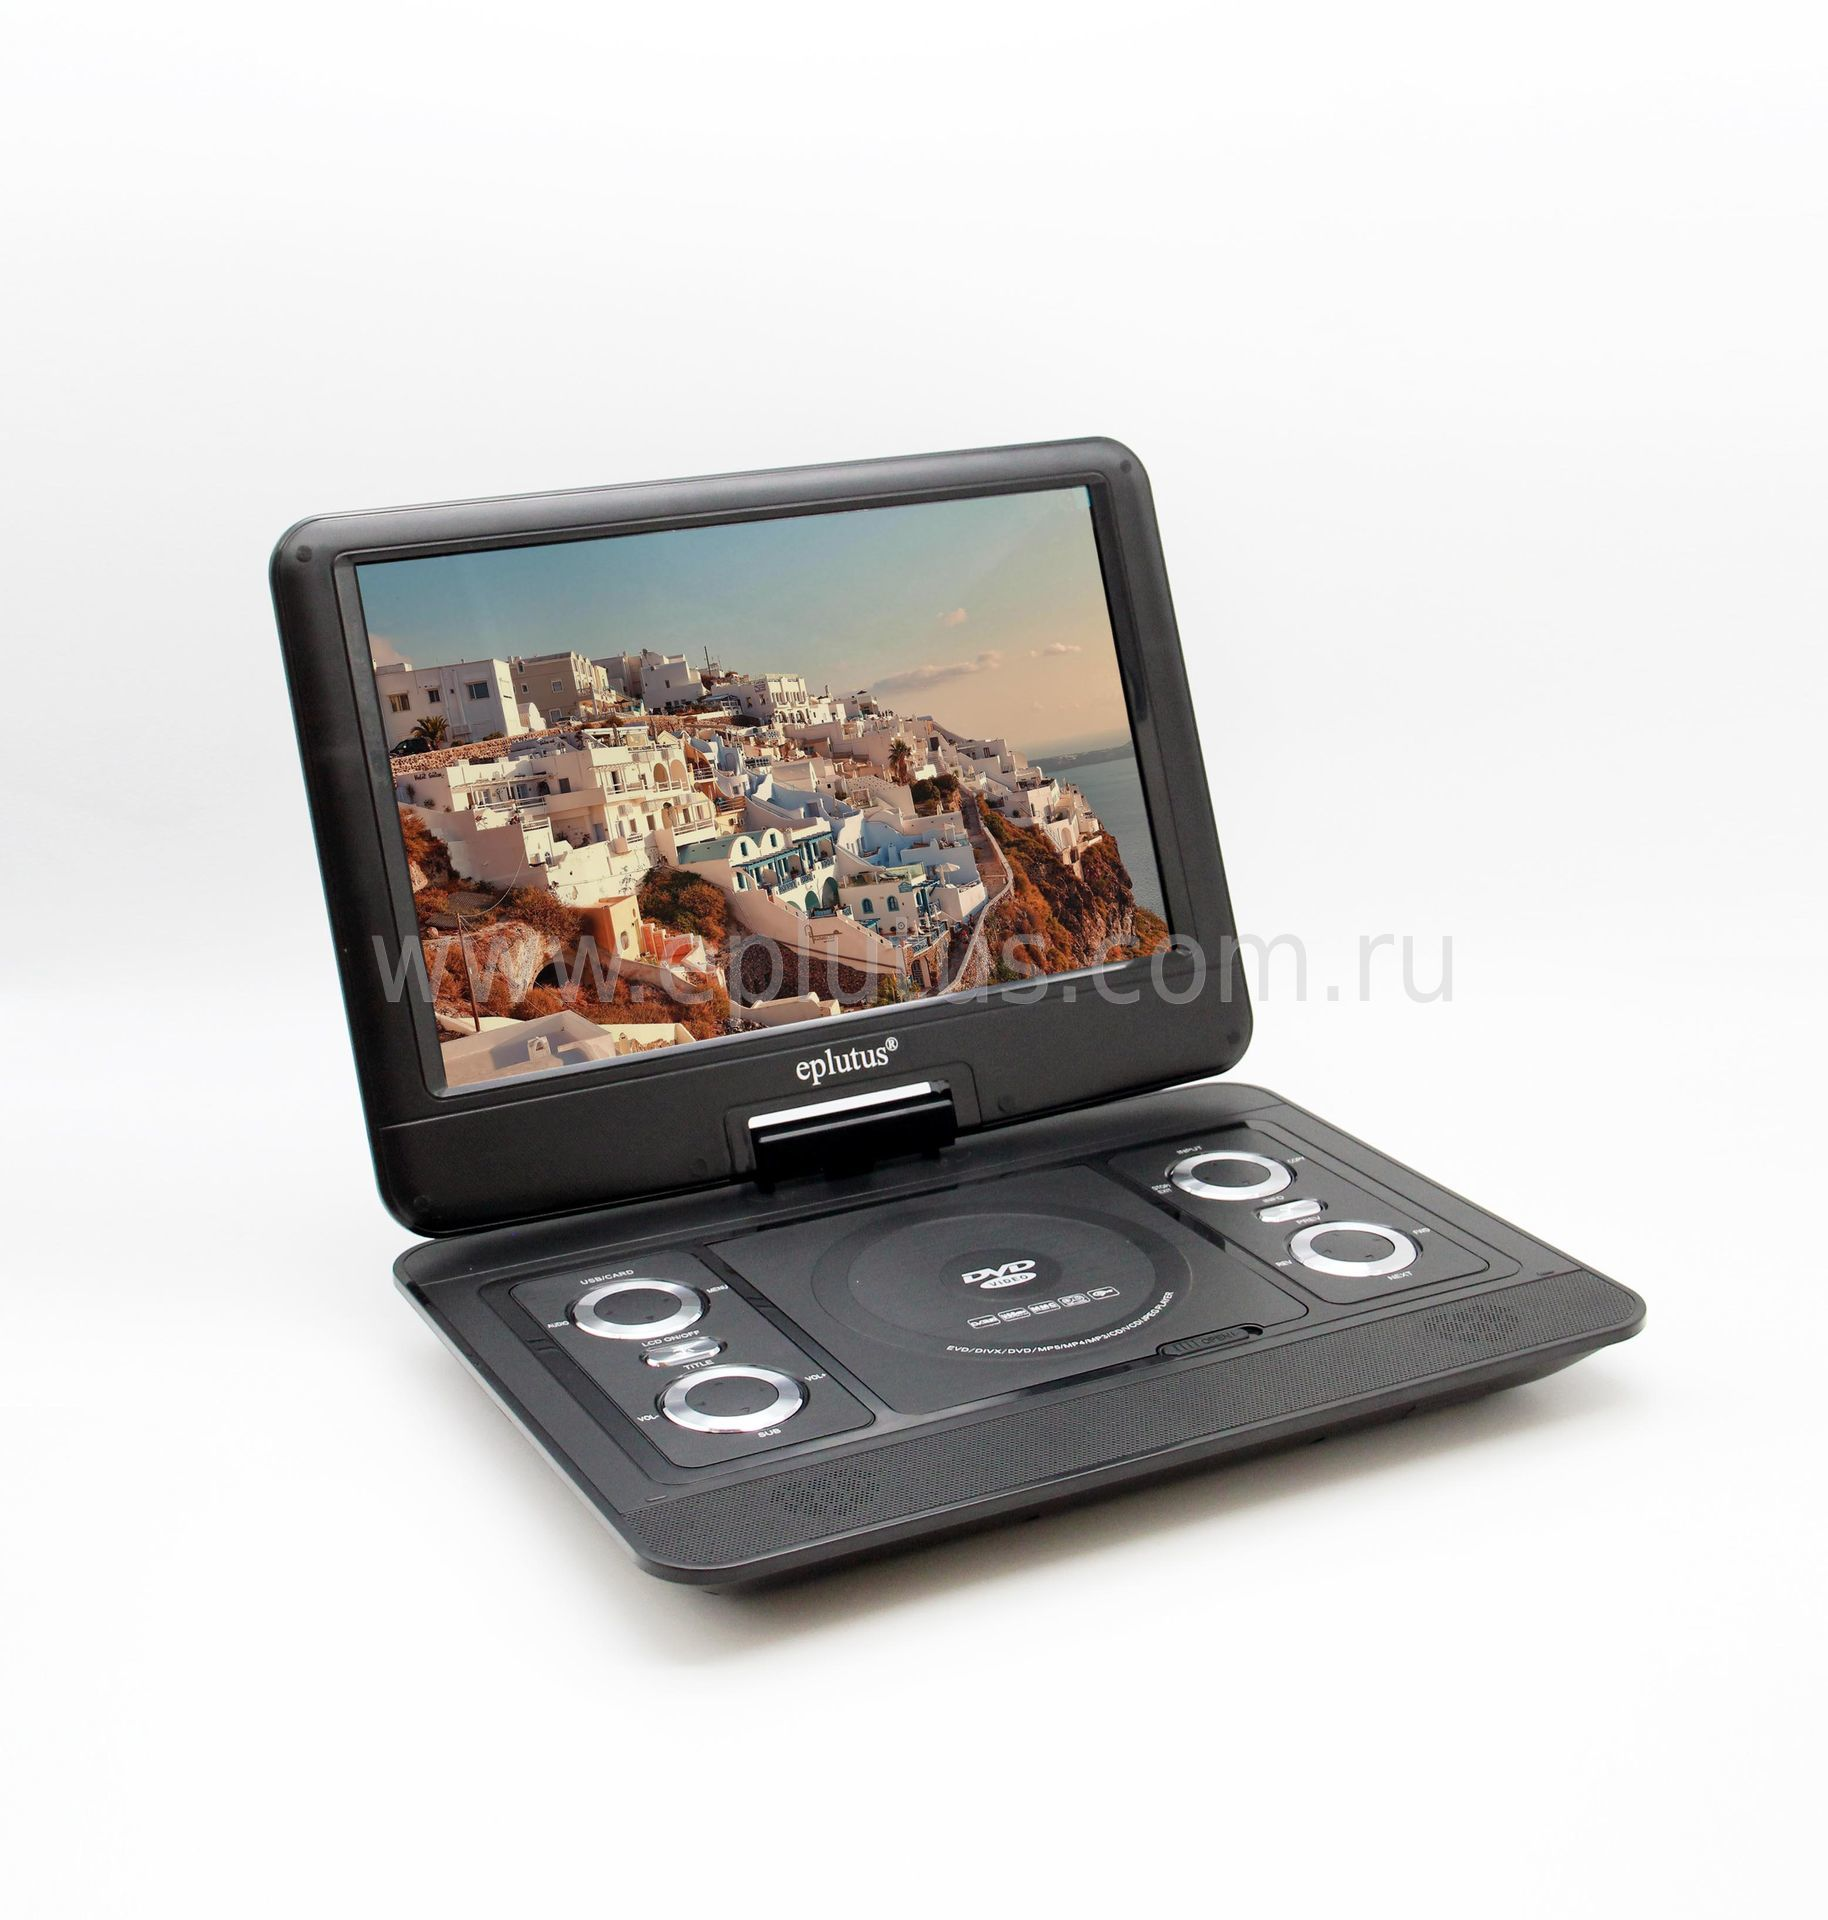 Eplutus EP-1330T автомобильный dvd плеер lg 2 din mazda 5 dvd gps tv 3g wifi bt usb sd 8